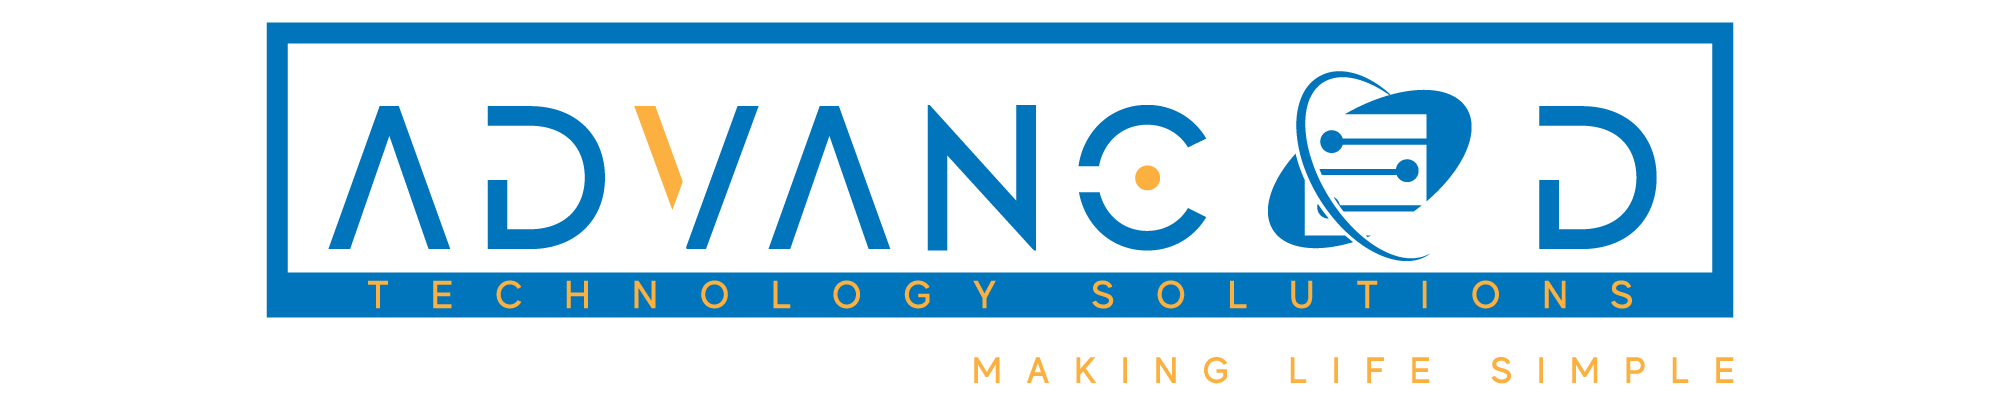 Advanced-Technology-Solutions-LOGO-D2.png